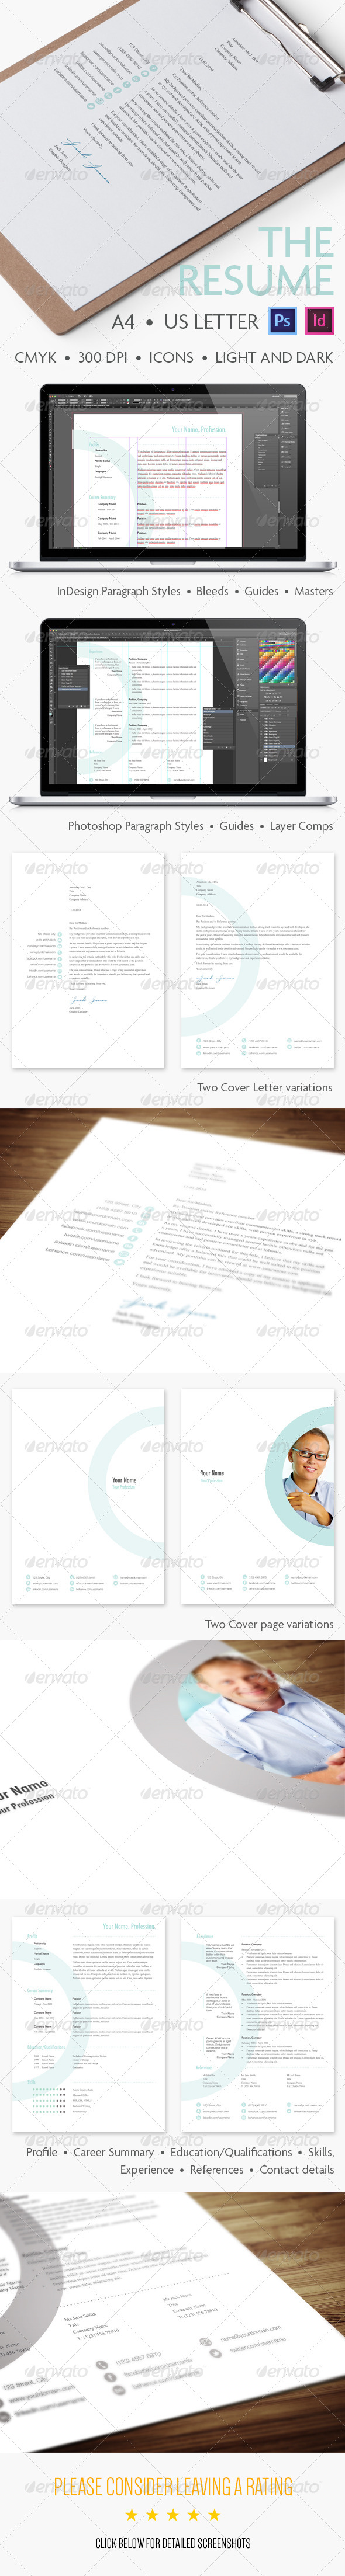 GraphicRiver The Resume A Modern Format 6363924